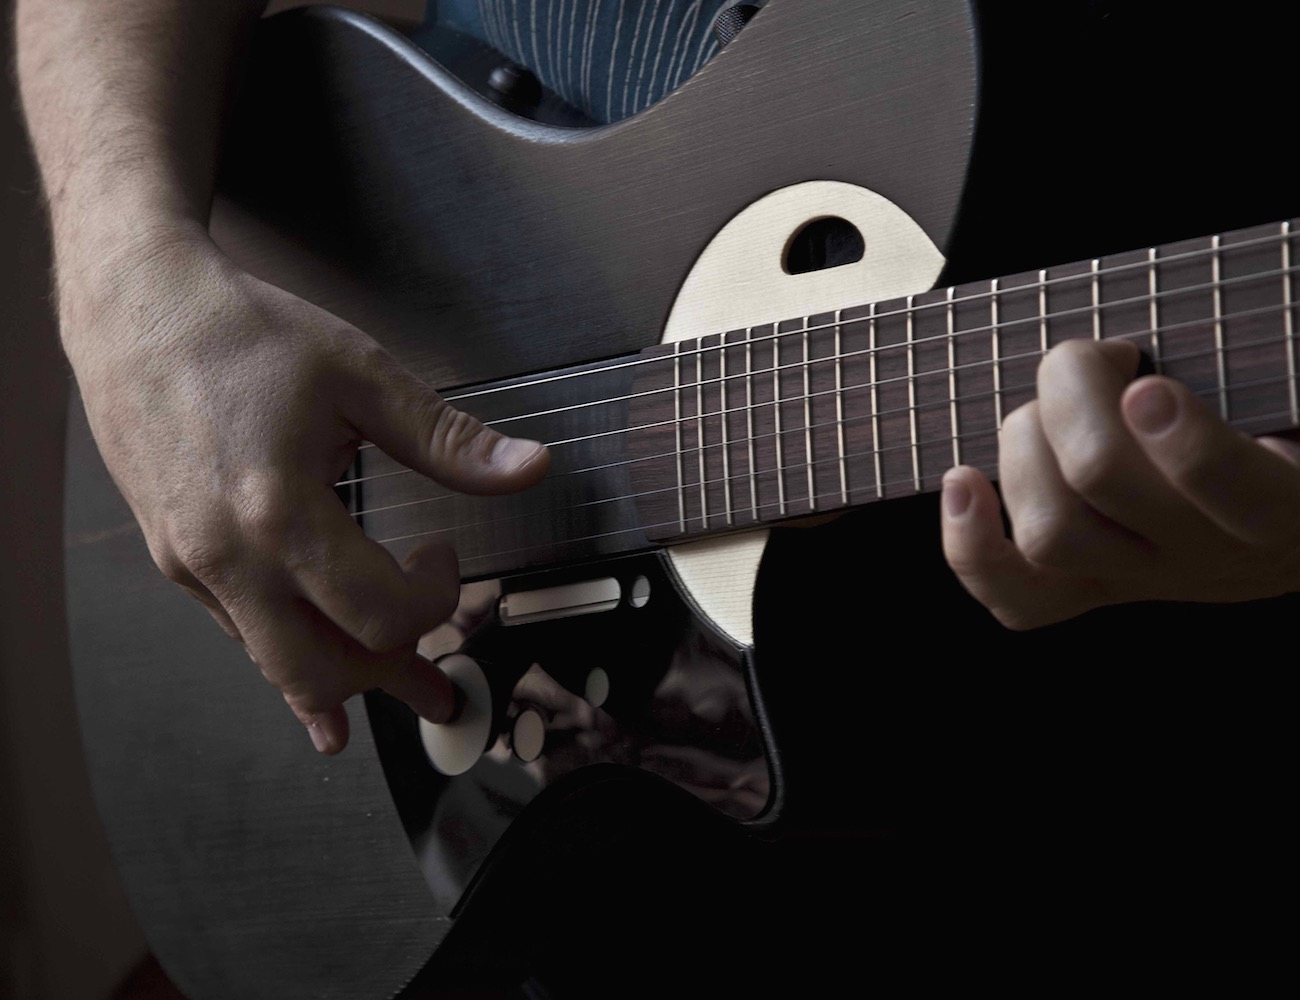 sensus-smart-guitar-by-mind-music-labs-02